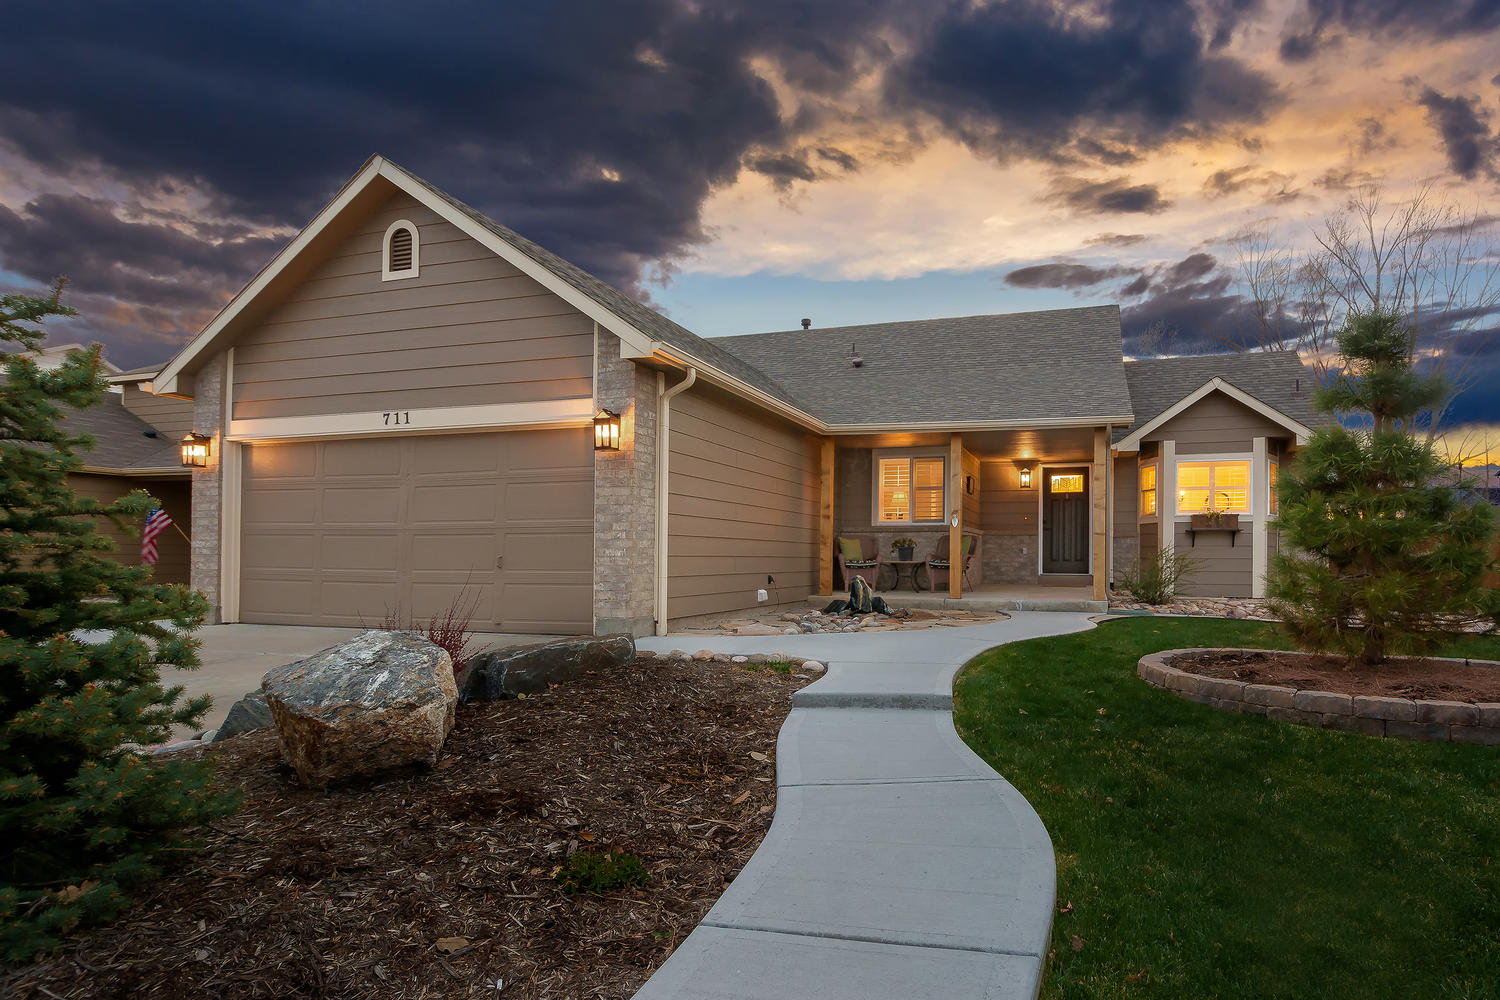 Home for Sale at 711 S 21st Ct Brighton CO 80601 listed by Jason Peck 720-446-6301